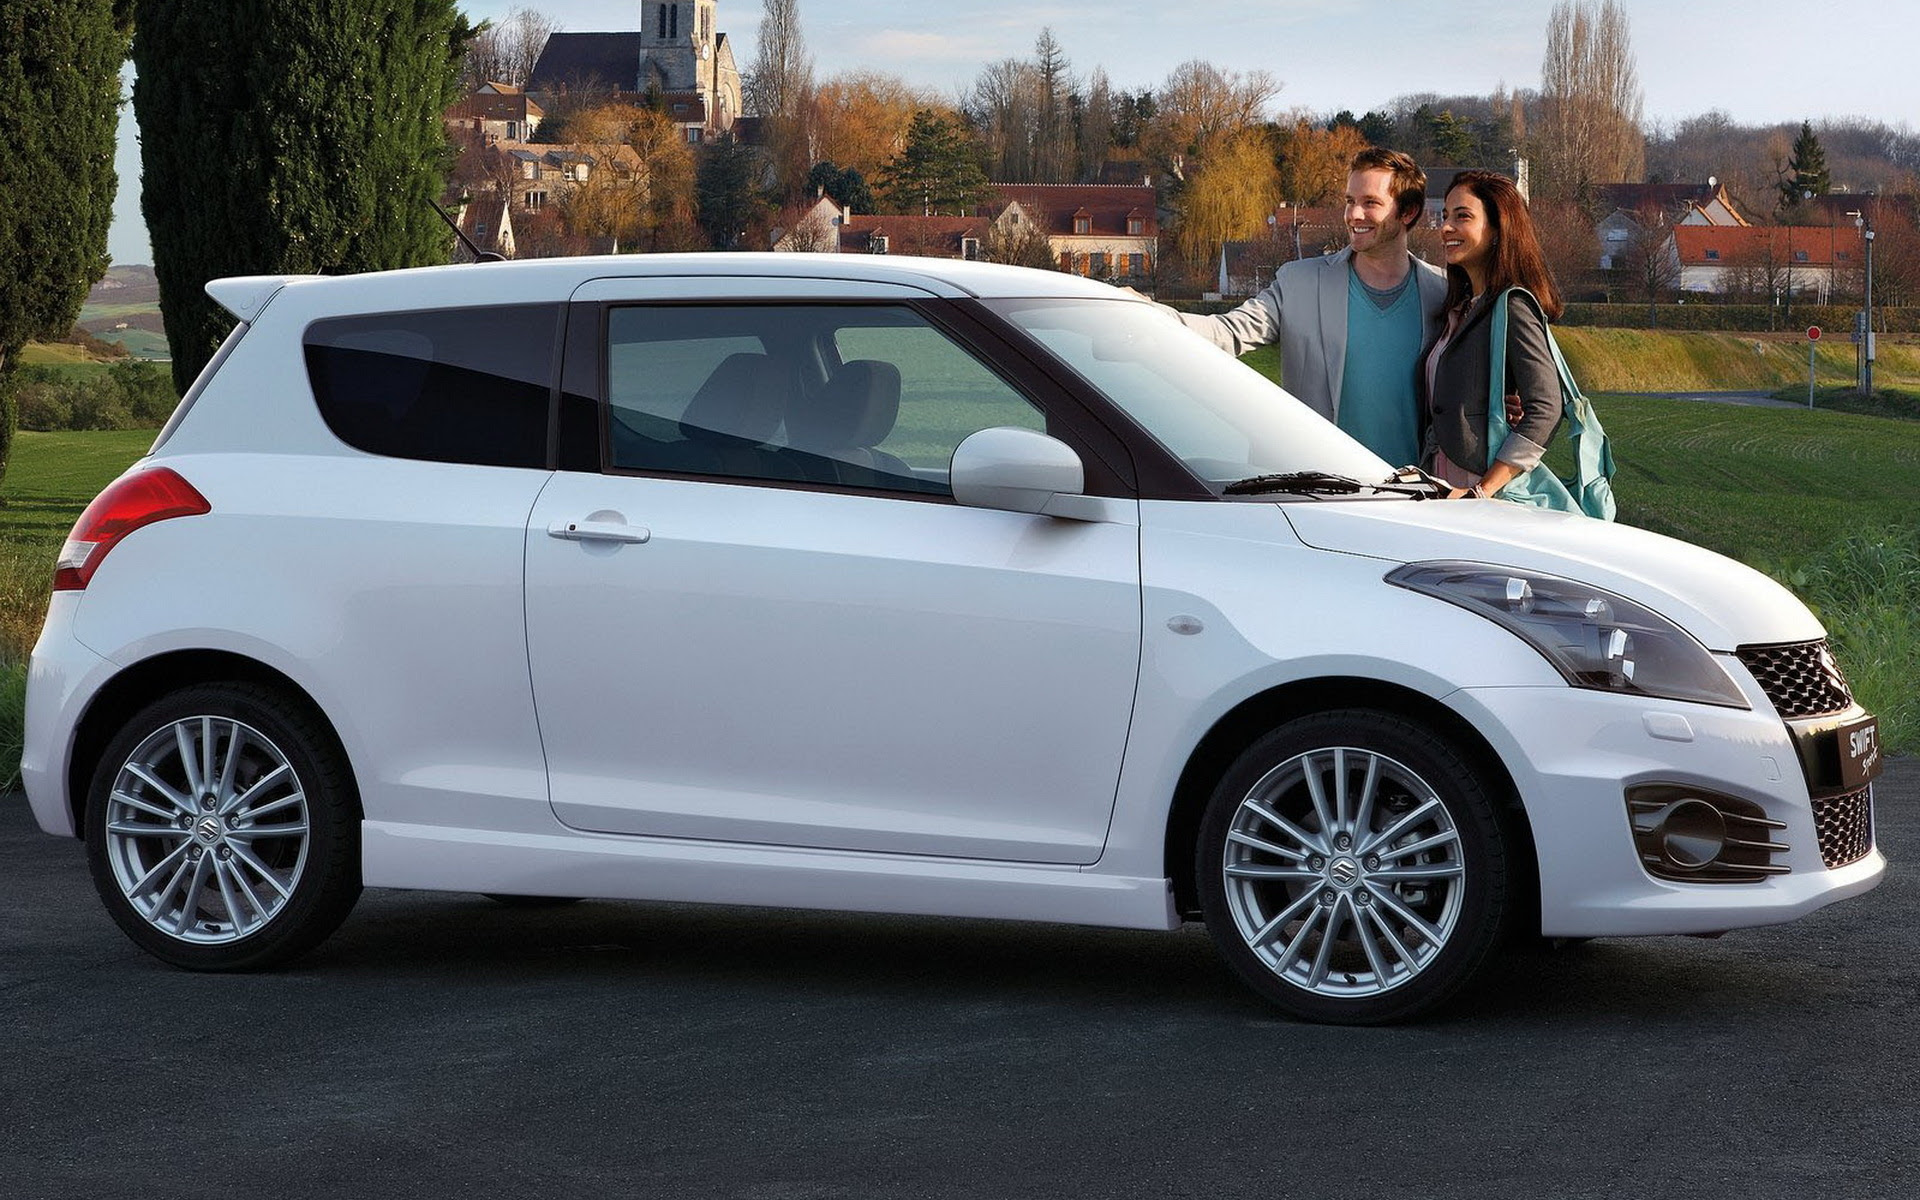 Suzuki-Swift Sport wallpapers and images